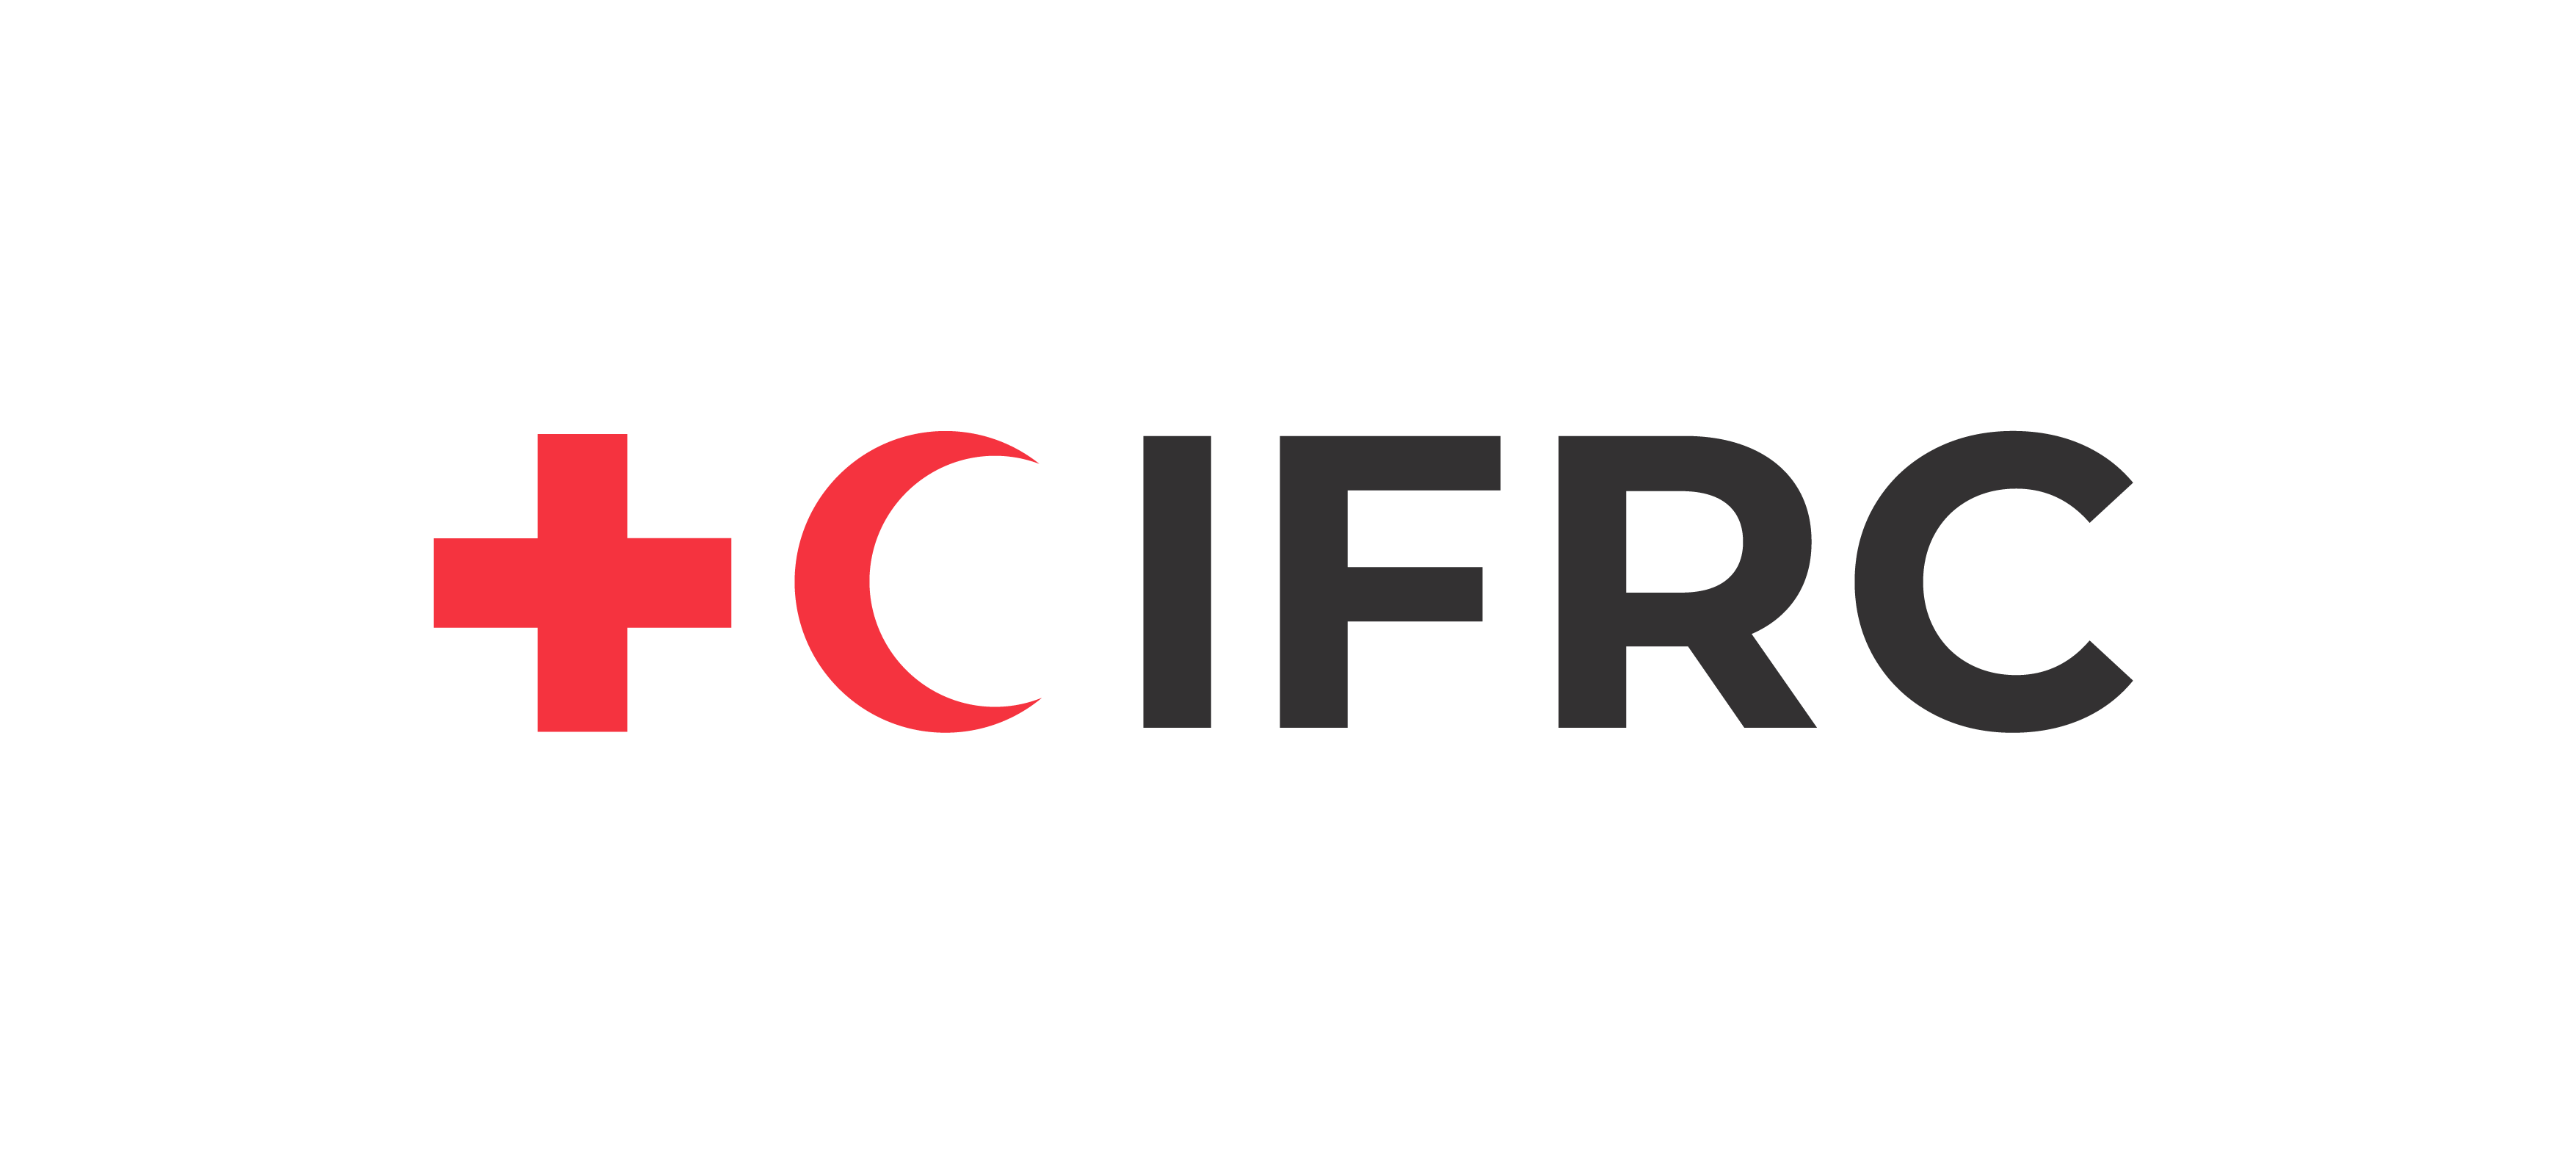 Logo The International Federation of Red Cross and Red Crescent Societies